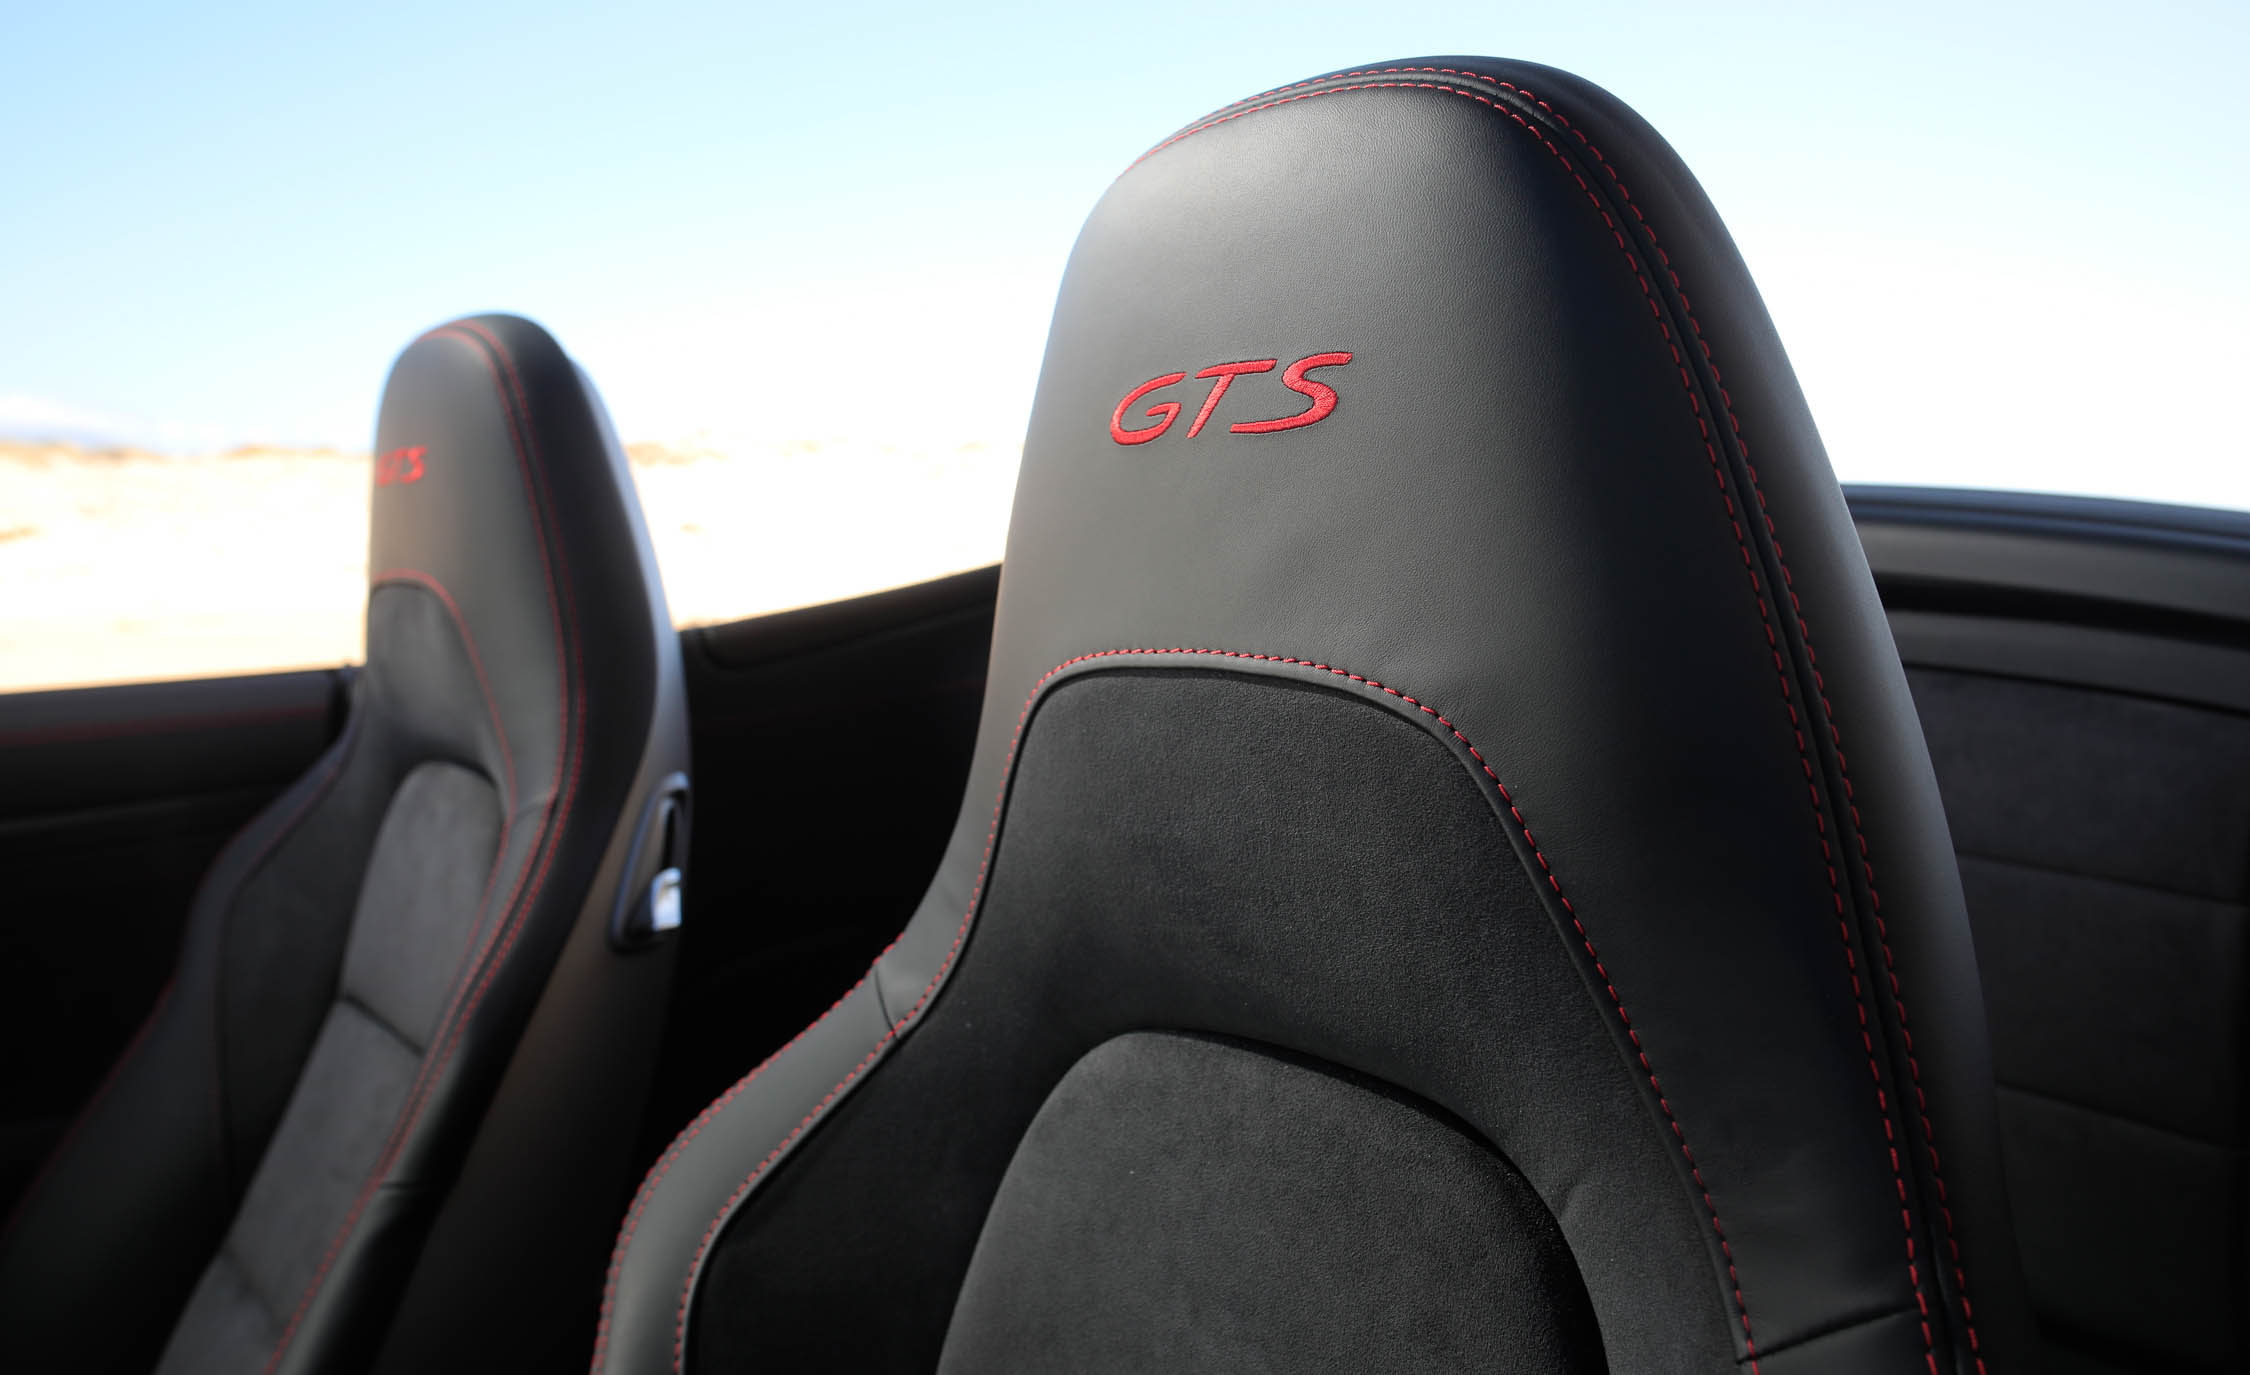 2017 Porsche 911 Carrera GTS Cabriolet Interior Seats Headrest (Photo 37 of 97)